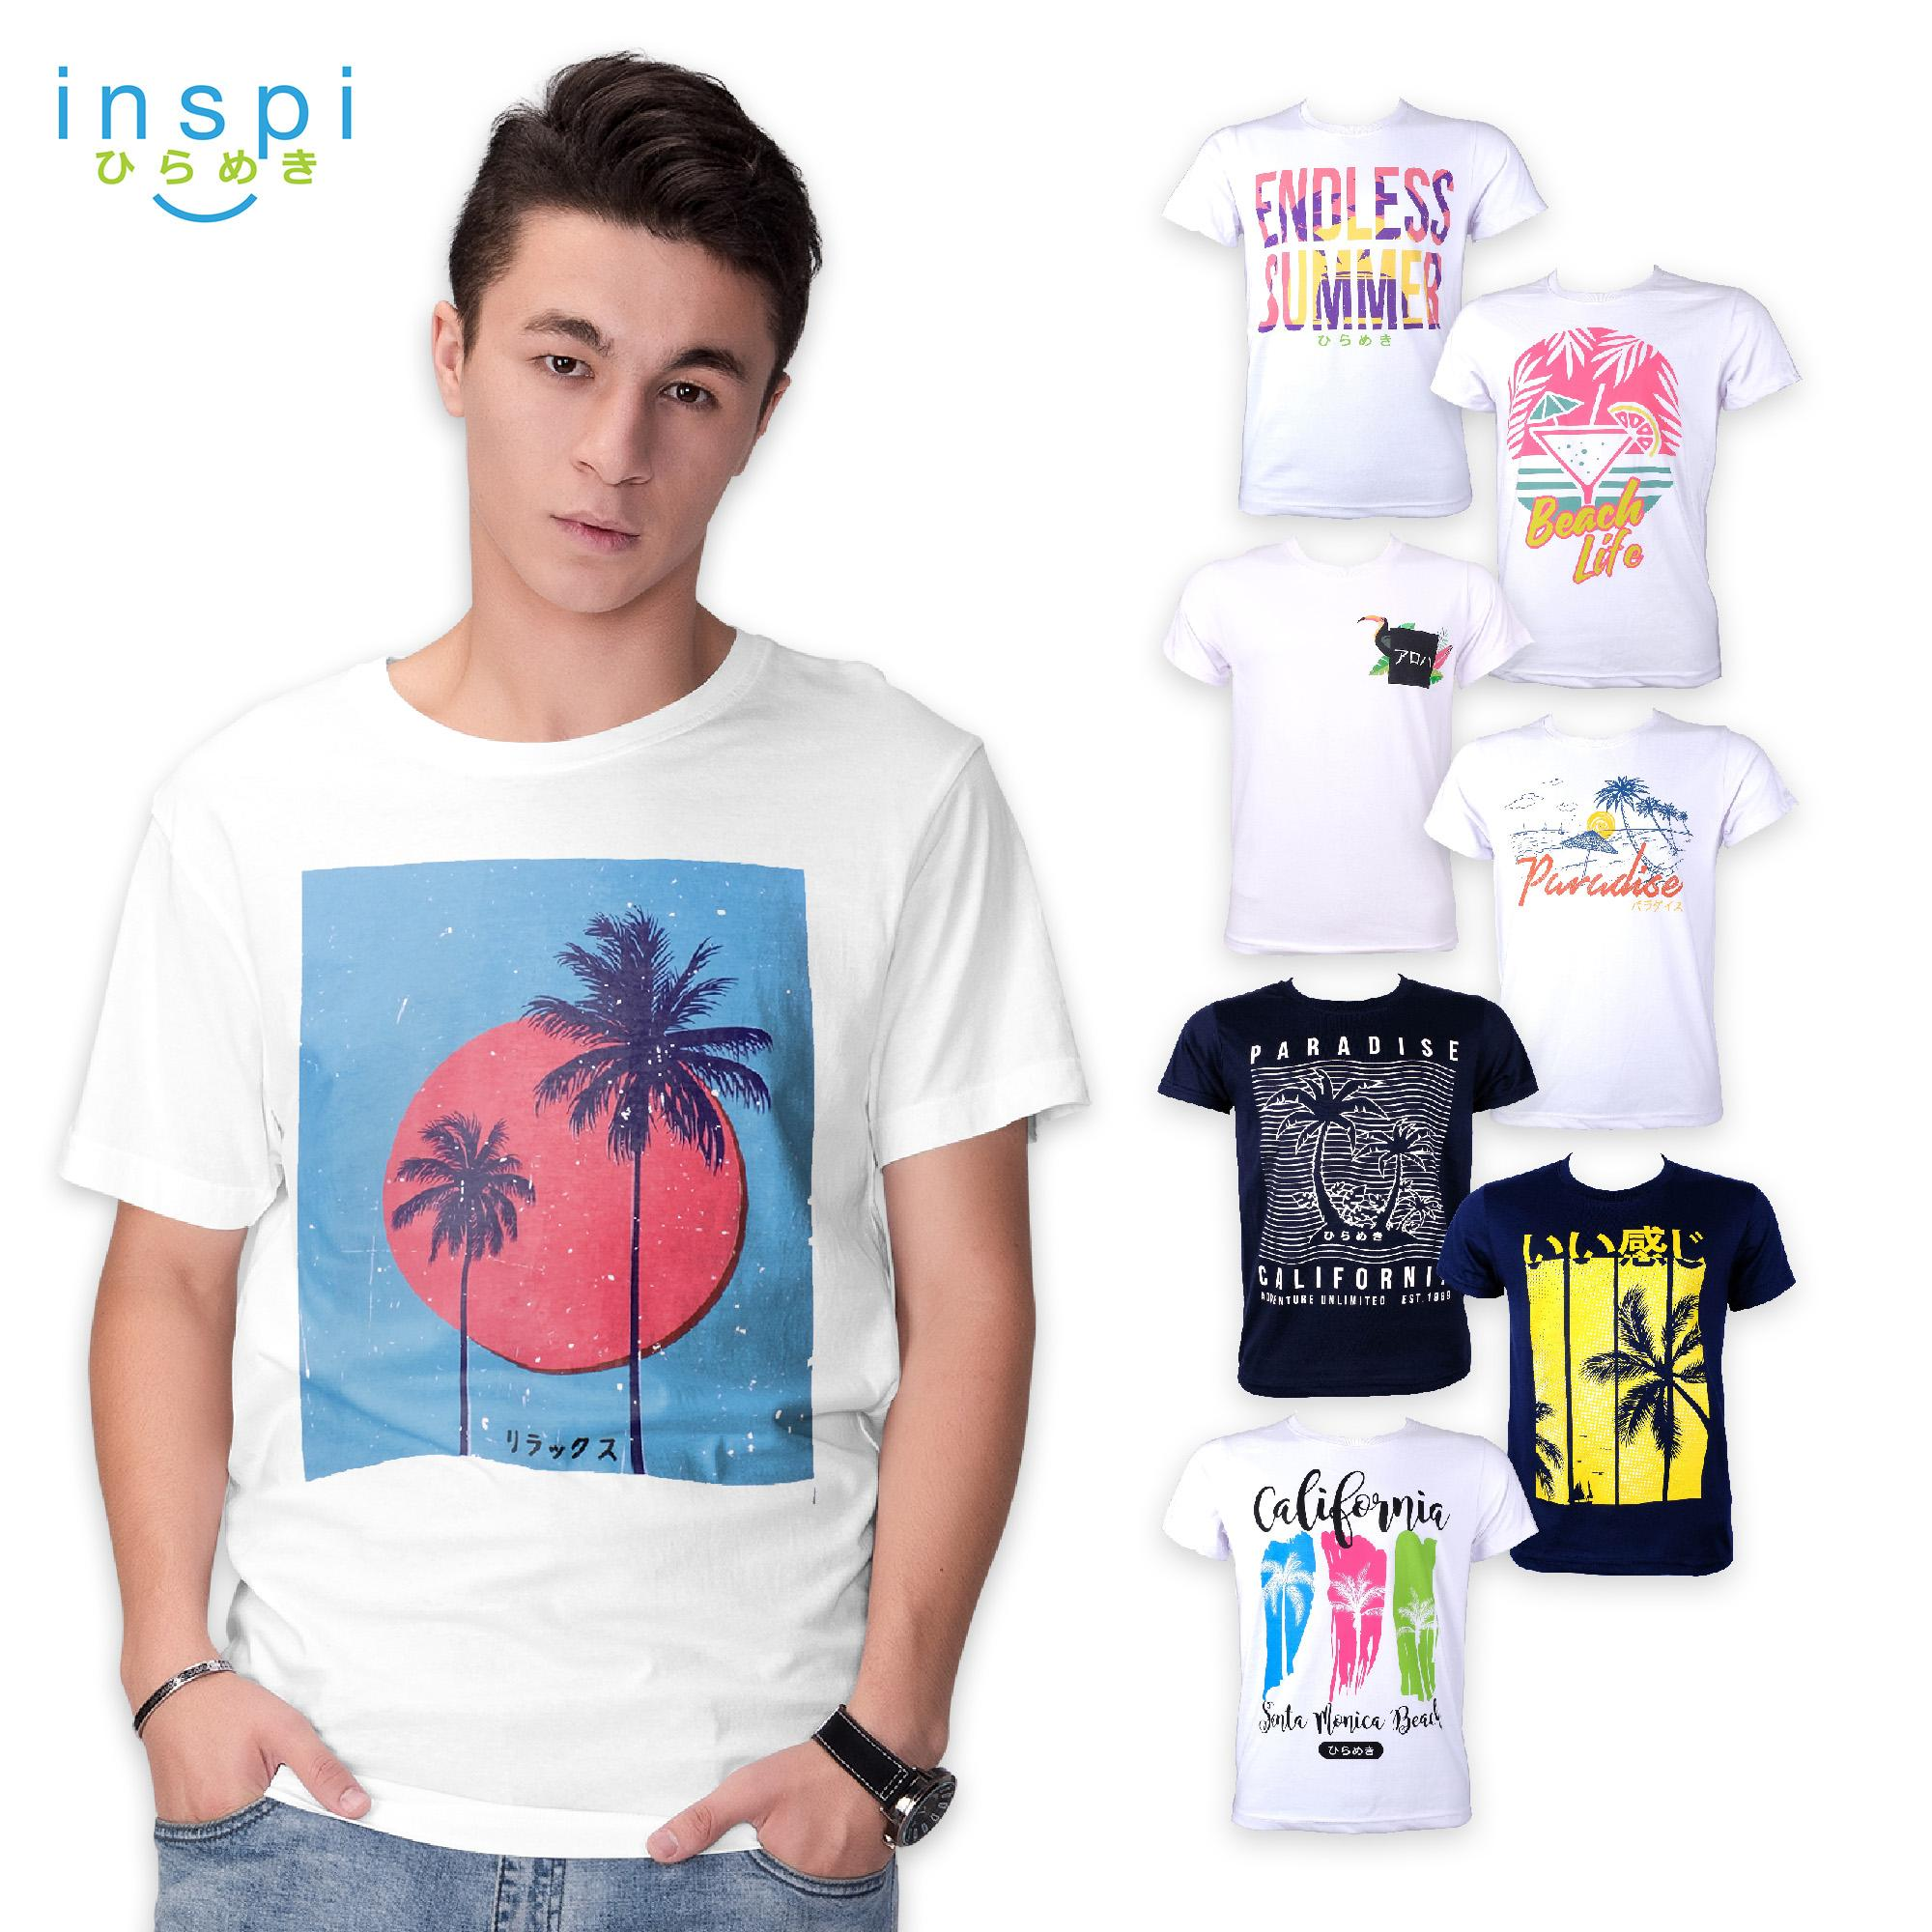 5d89049854a INSPI Tees Summer Collection tshirt printed graphic tee Mens t shirt shirts  for men tshirts sale